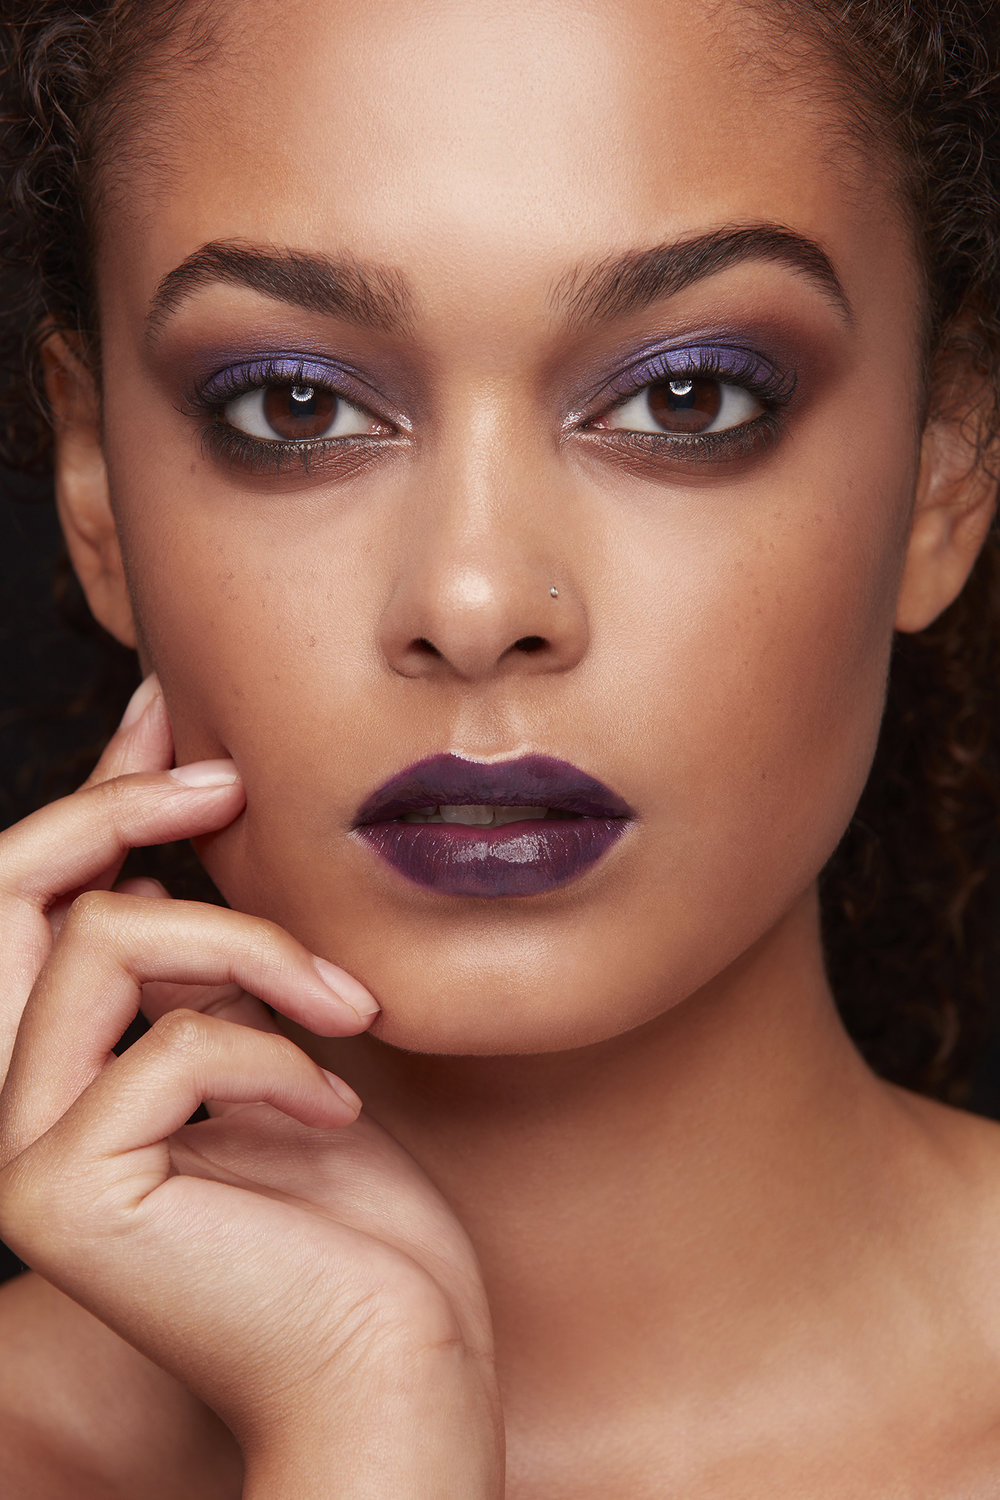 retouched closeup of woman with purple amethyst eye shadow and purple lipstick, hand on face